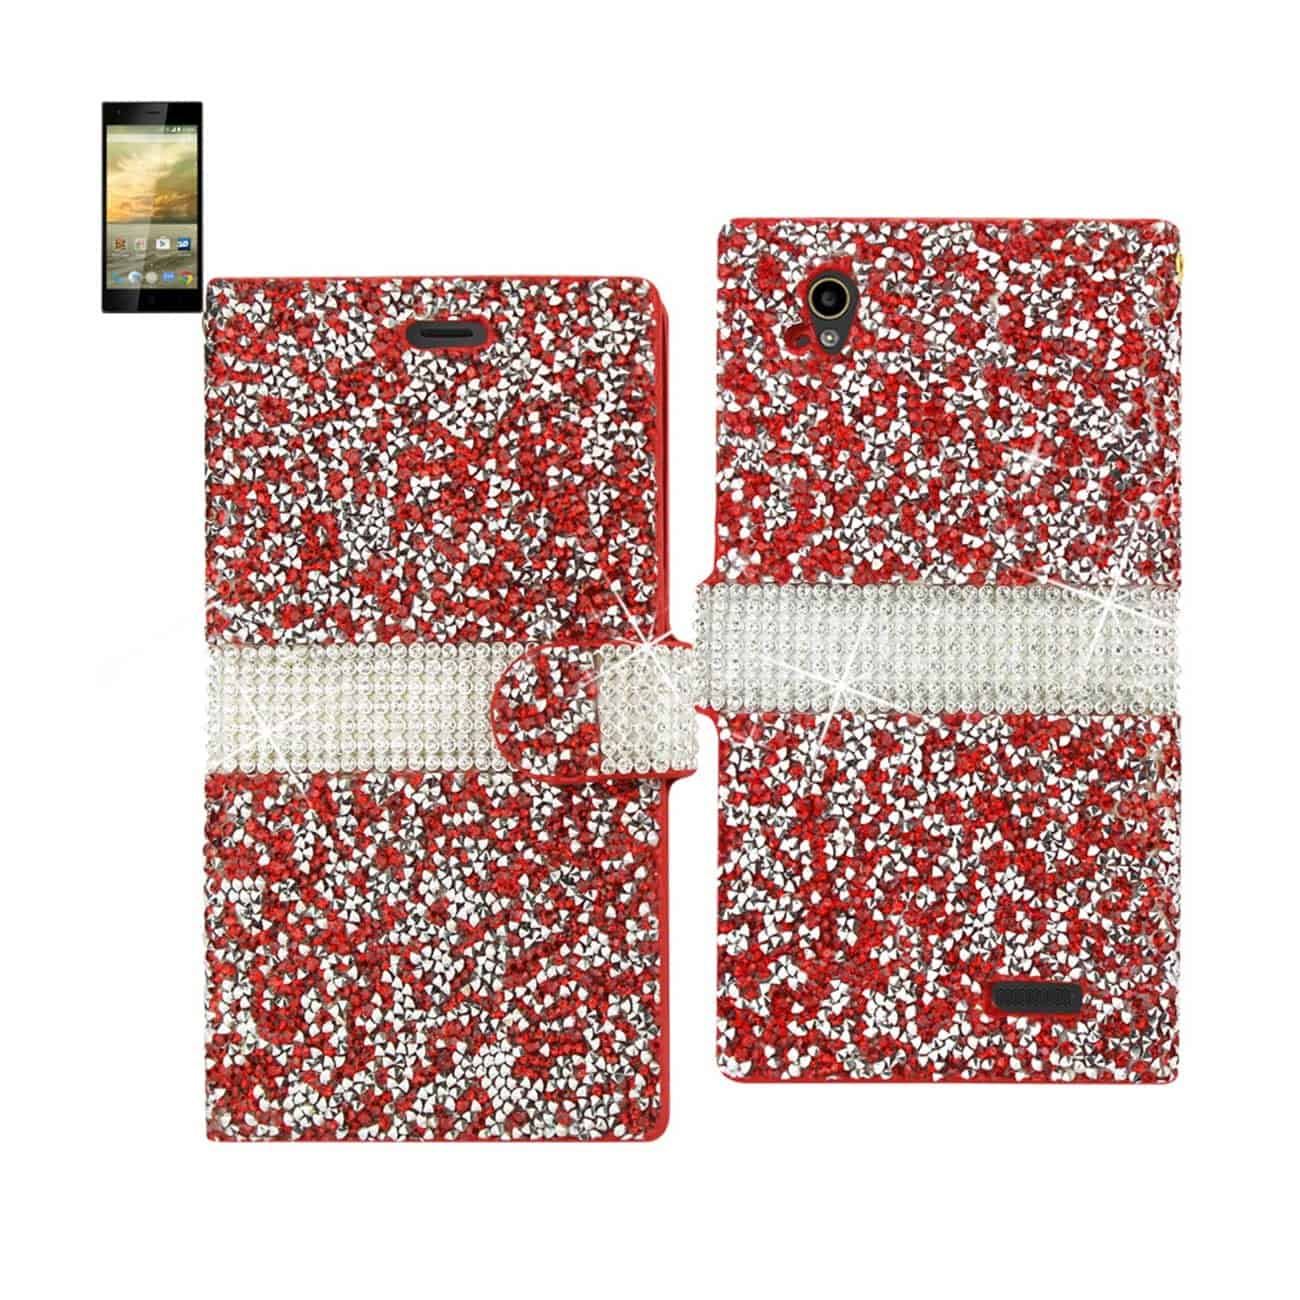 ZTE WARP ELITE JEWELRY RHINESTONE WALLET CASE IN RED